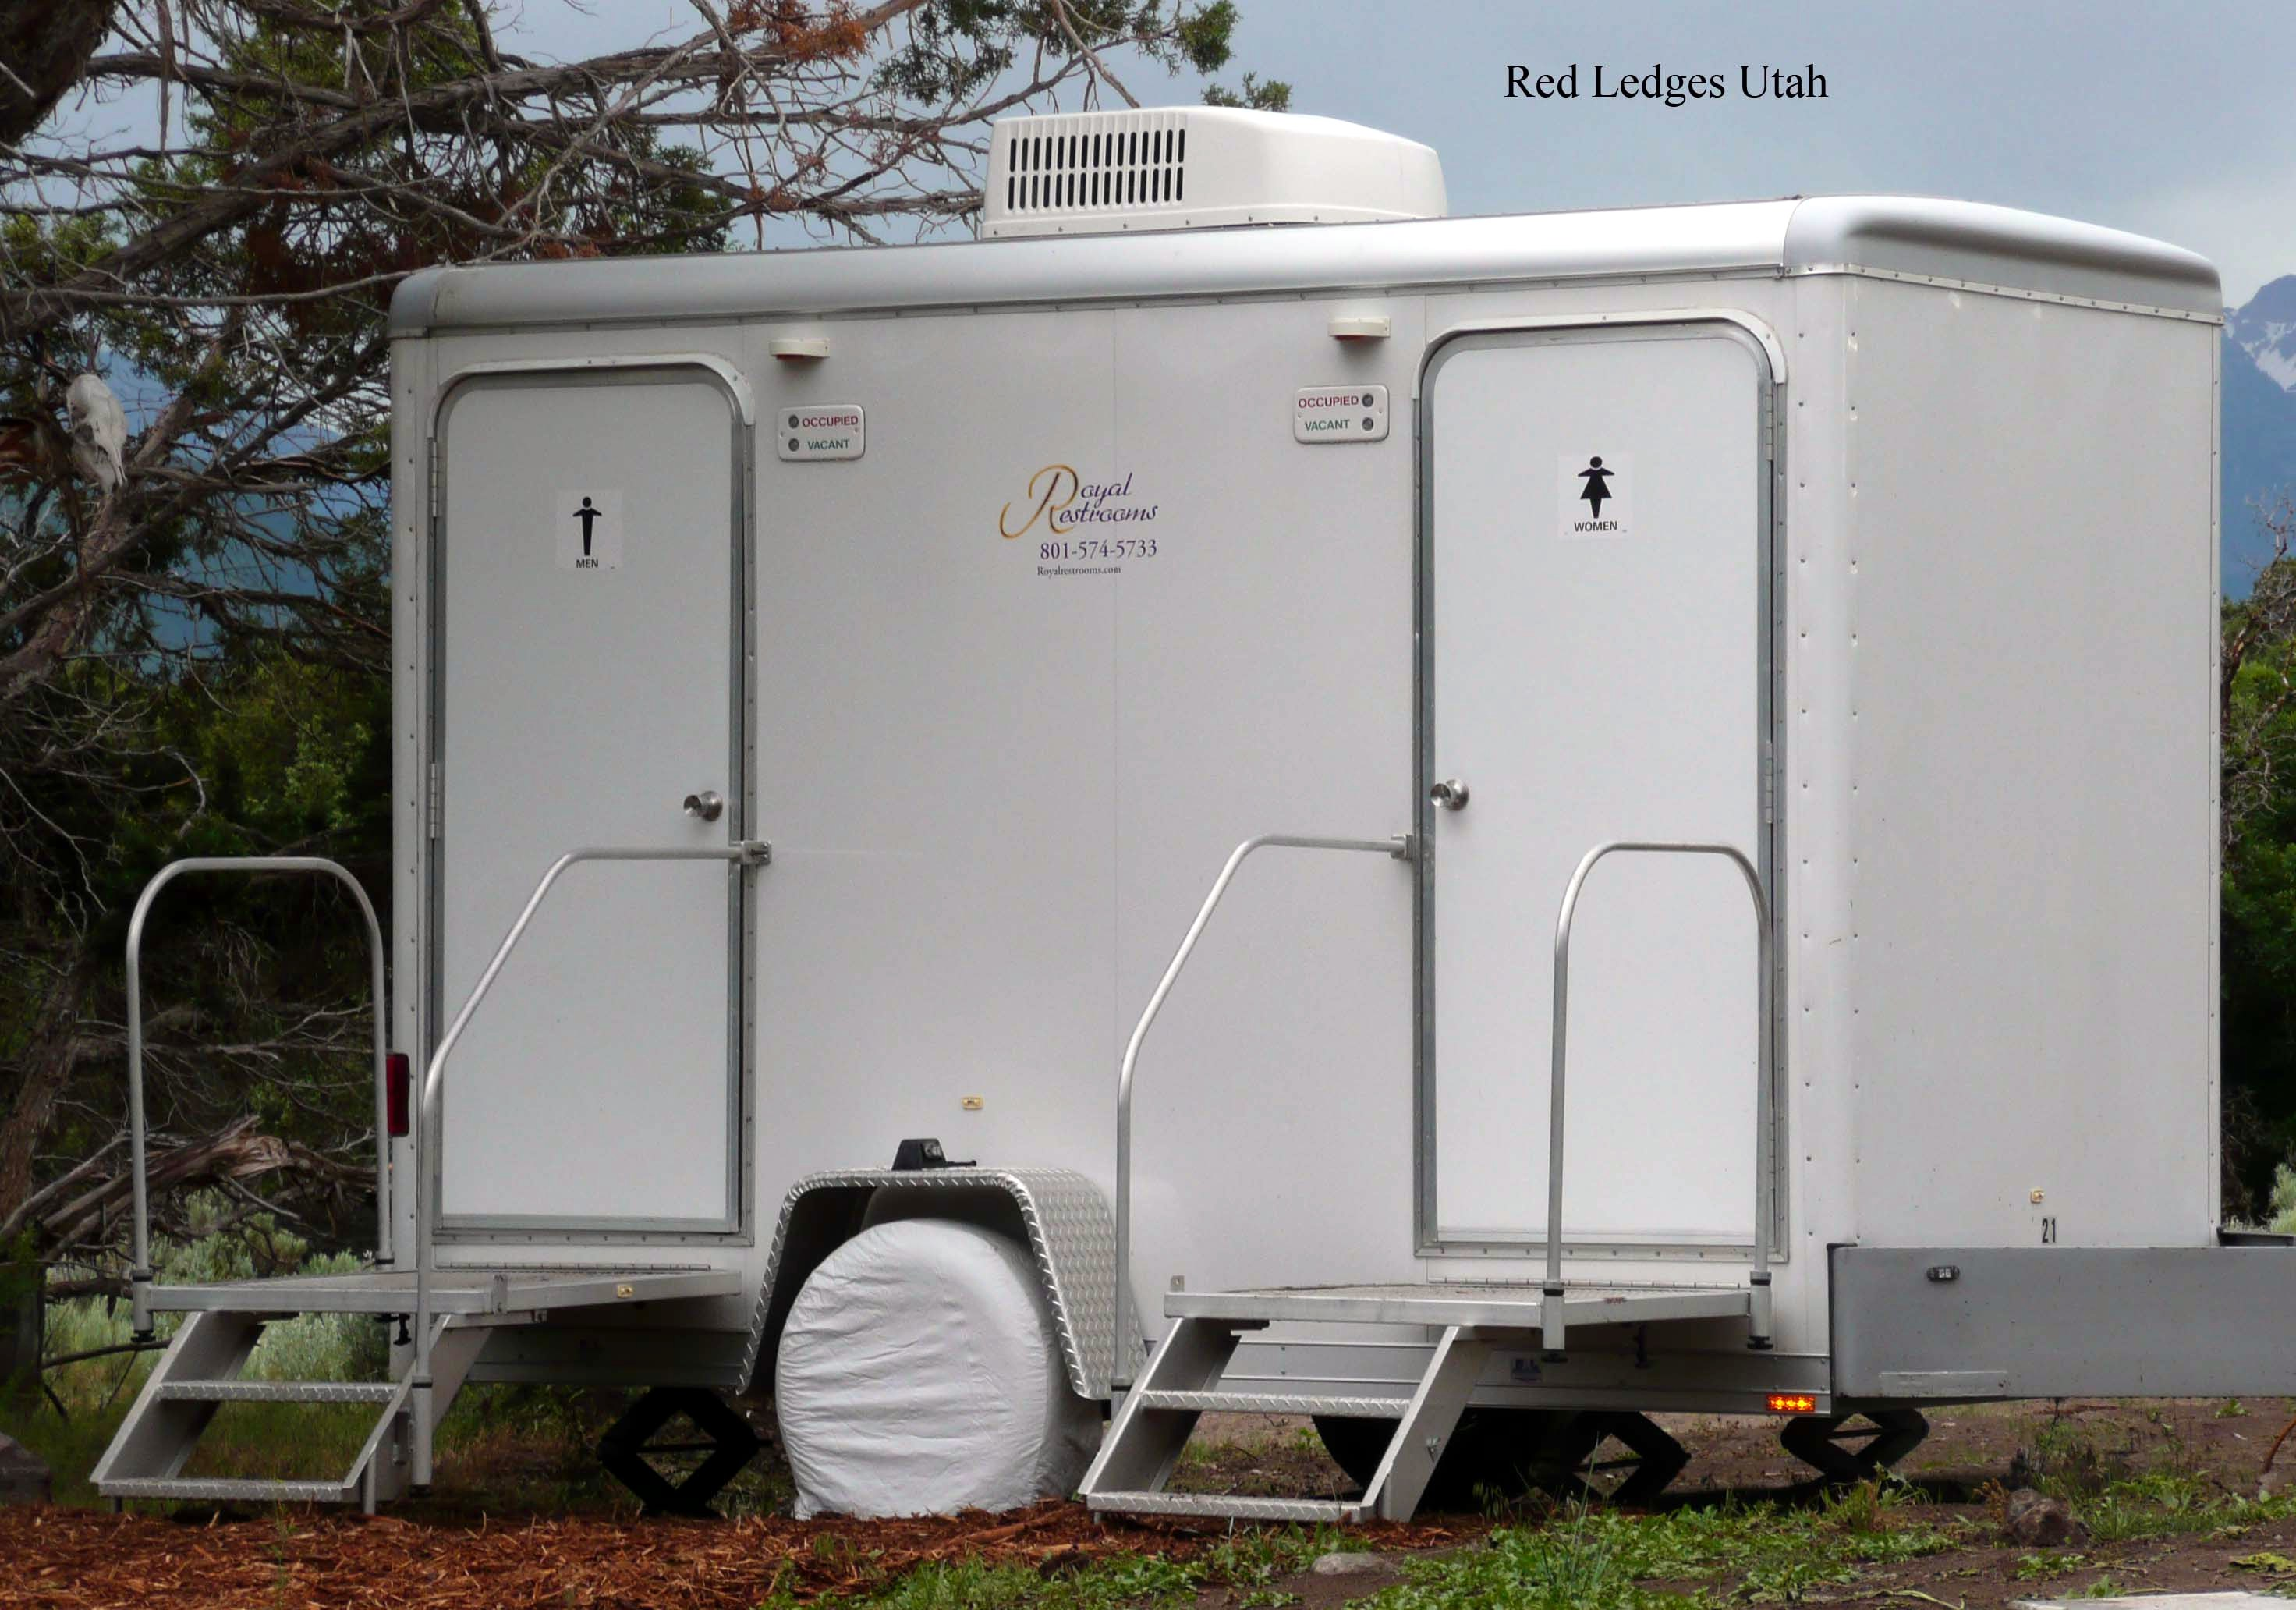 bathroom waste portable dixie industry services trailers toilets construction